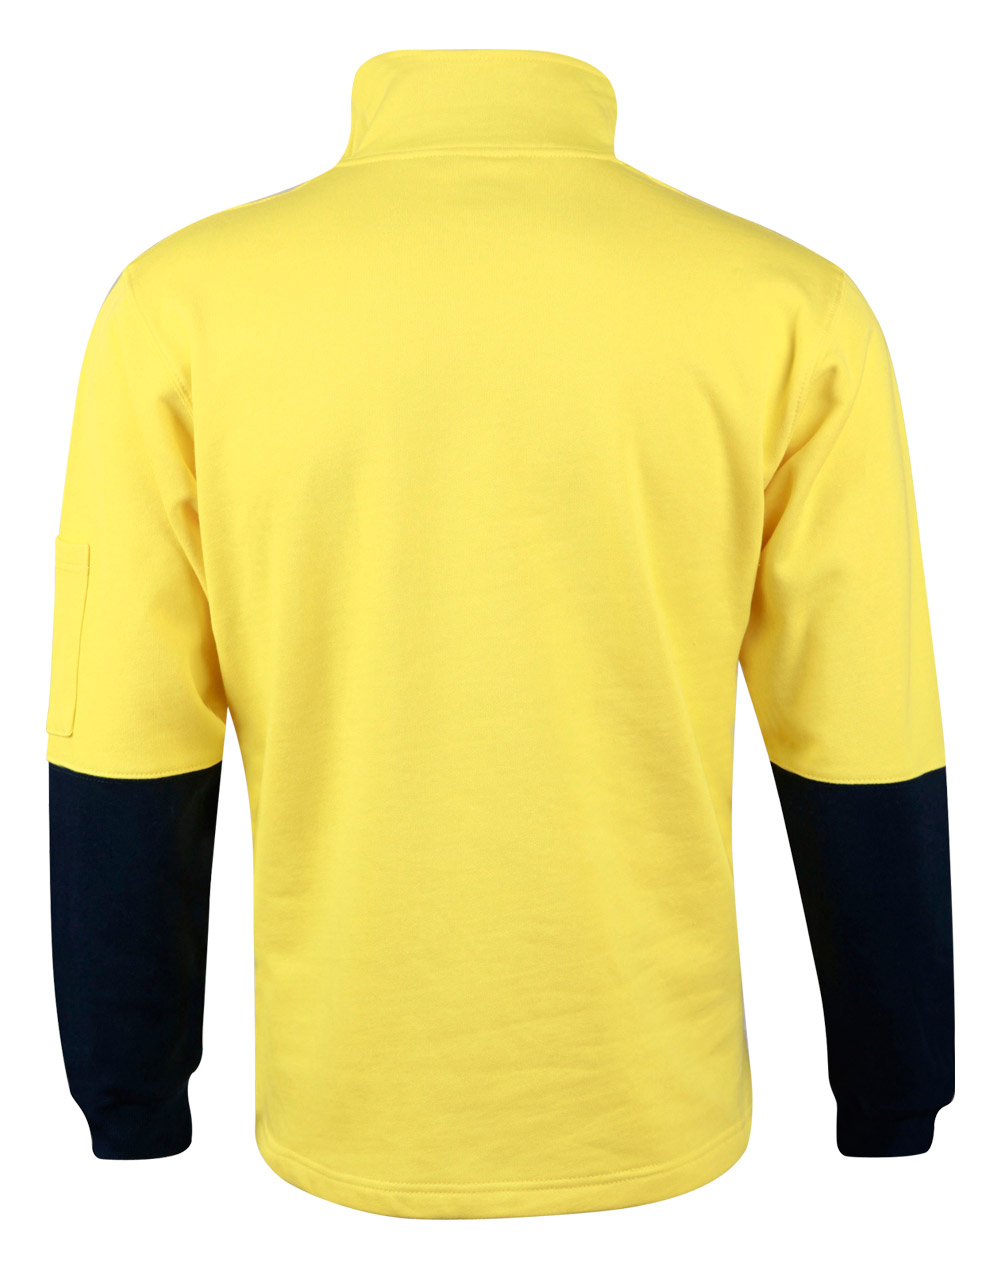 https://s3-ap-southeast-1.amazonaws.com/ws-imgs/WORKWEAR/SW47_Yellow.Navy_Back.jpg